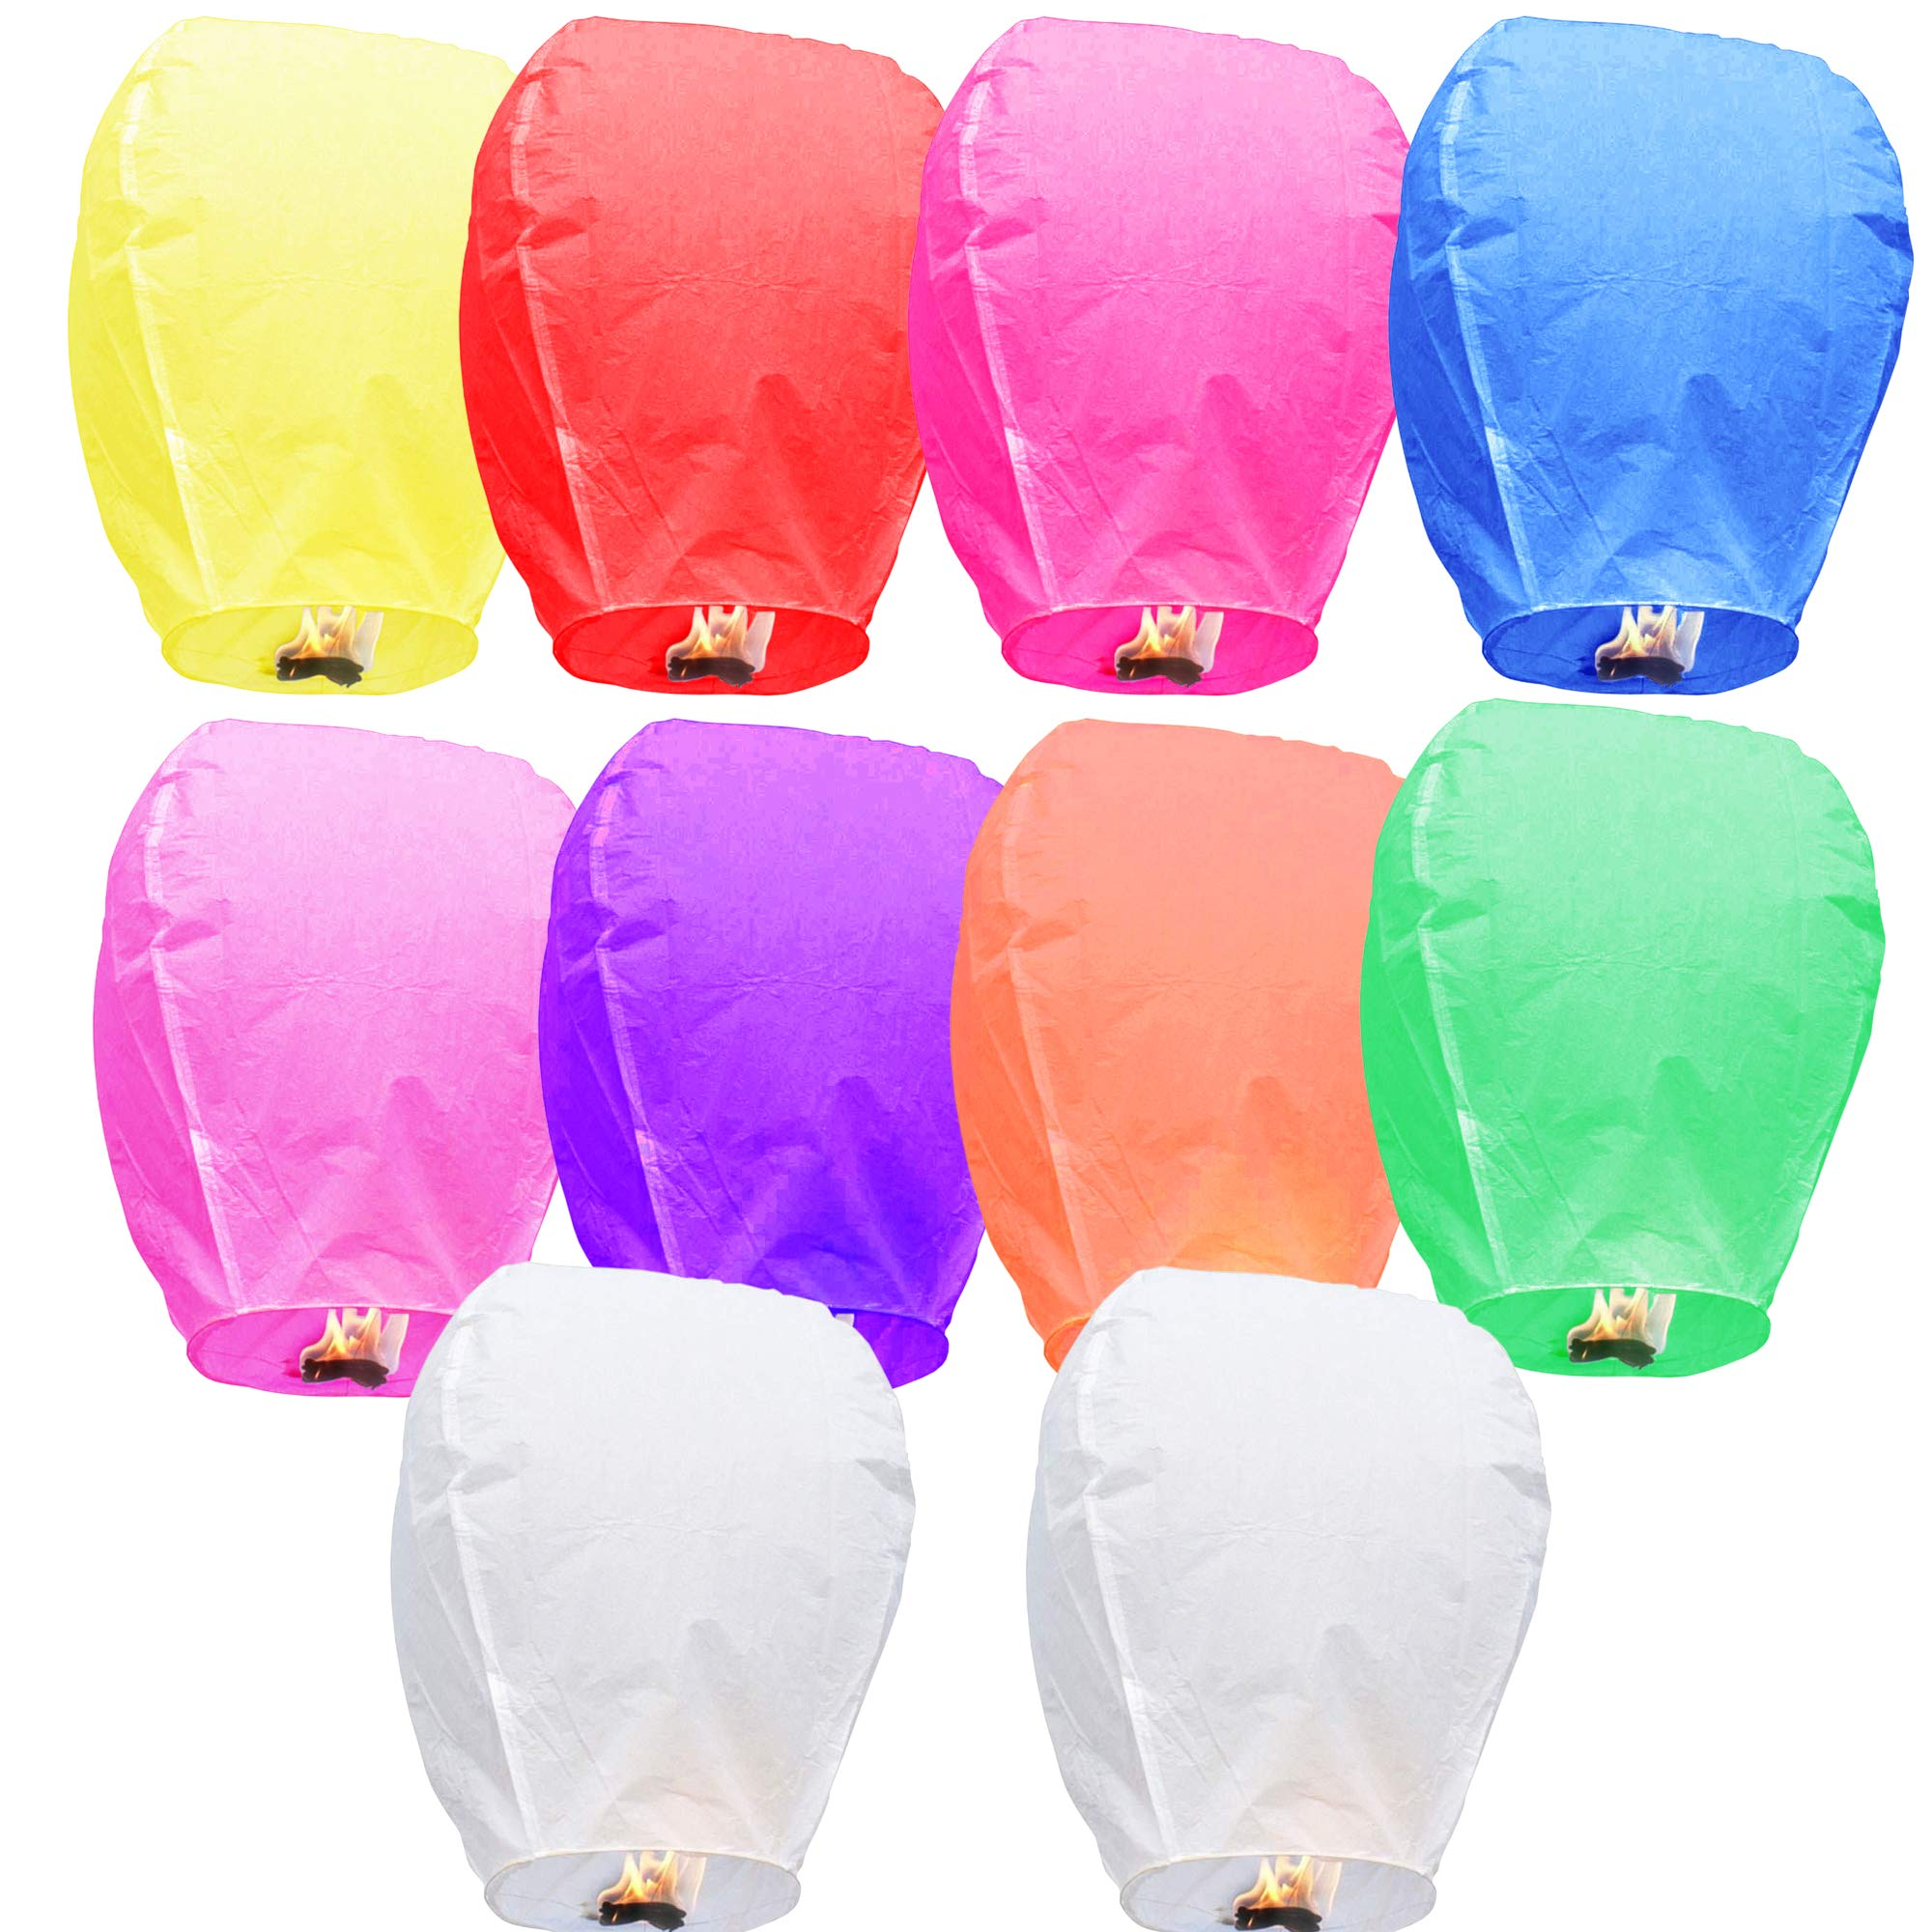 Colorful Chinese Lanterns - Paper Flying Sky Lanterns - 100% Biodegradable Paper Lanterns Multicolor Assortment for Birthdays, Parties, New Years, Memorial Ceremonies, and More – 10 Pack by Corpower